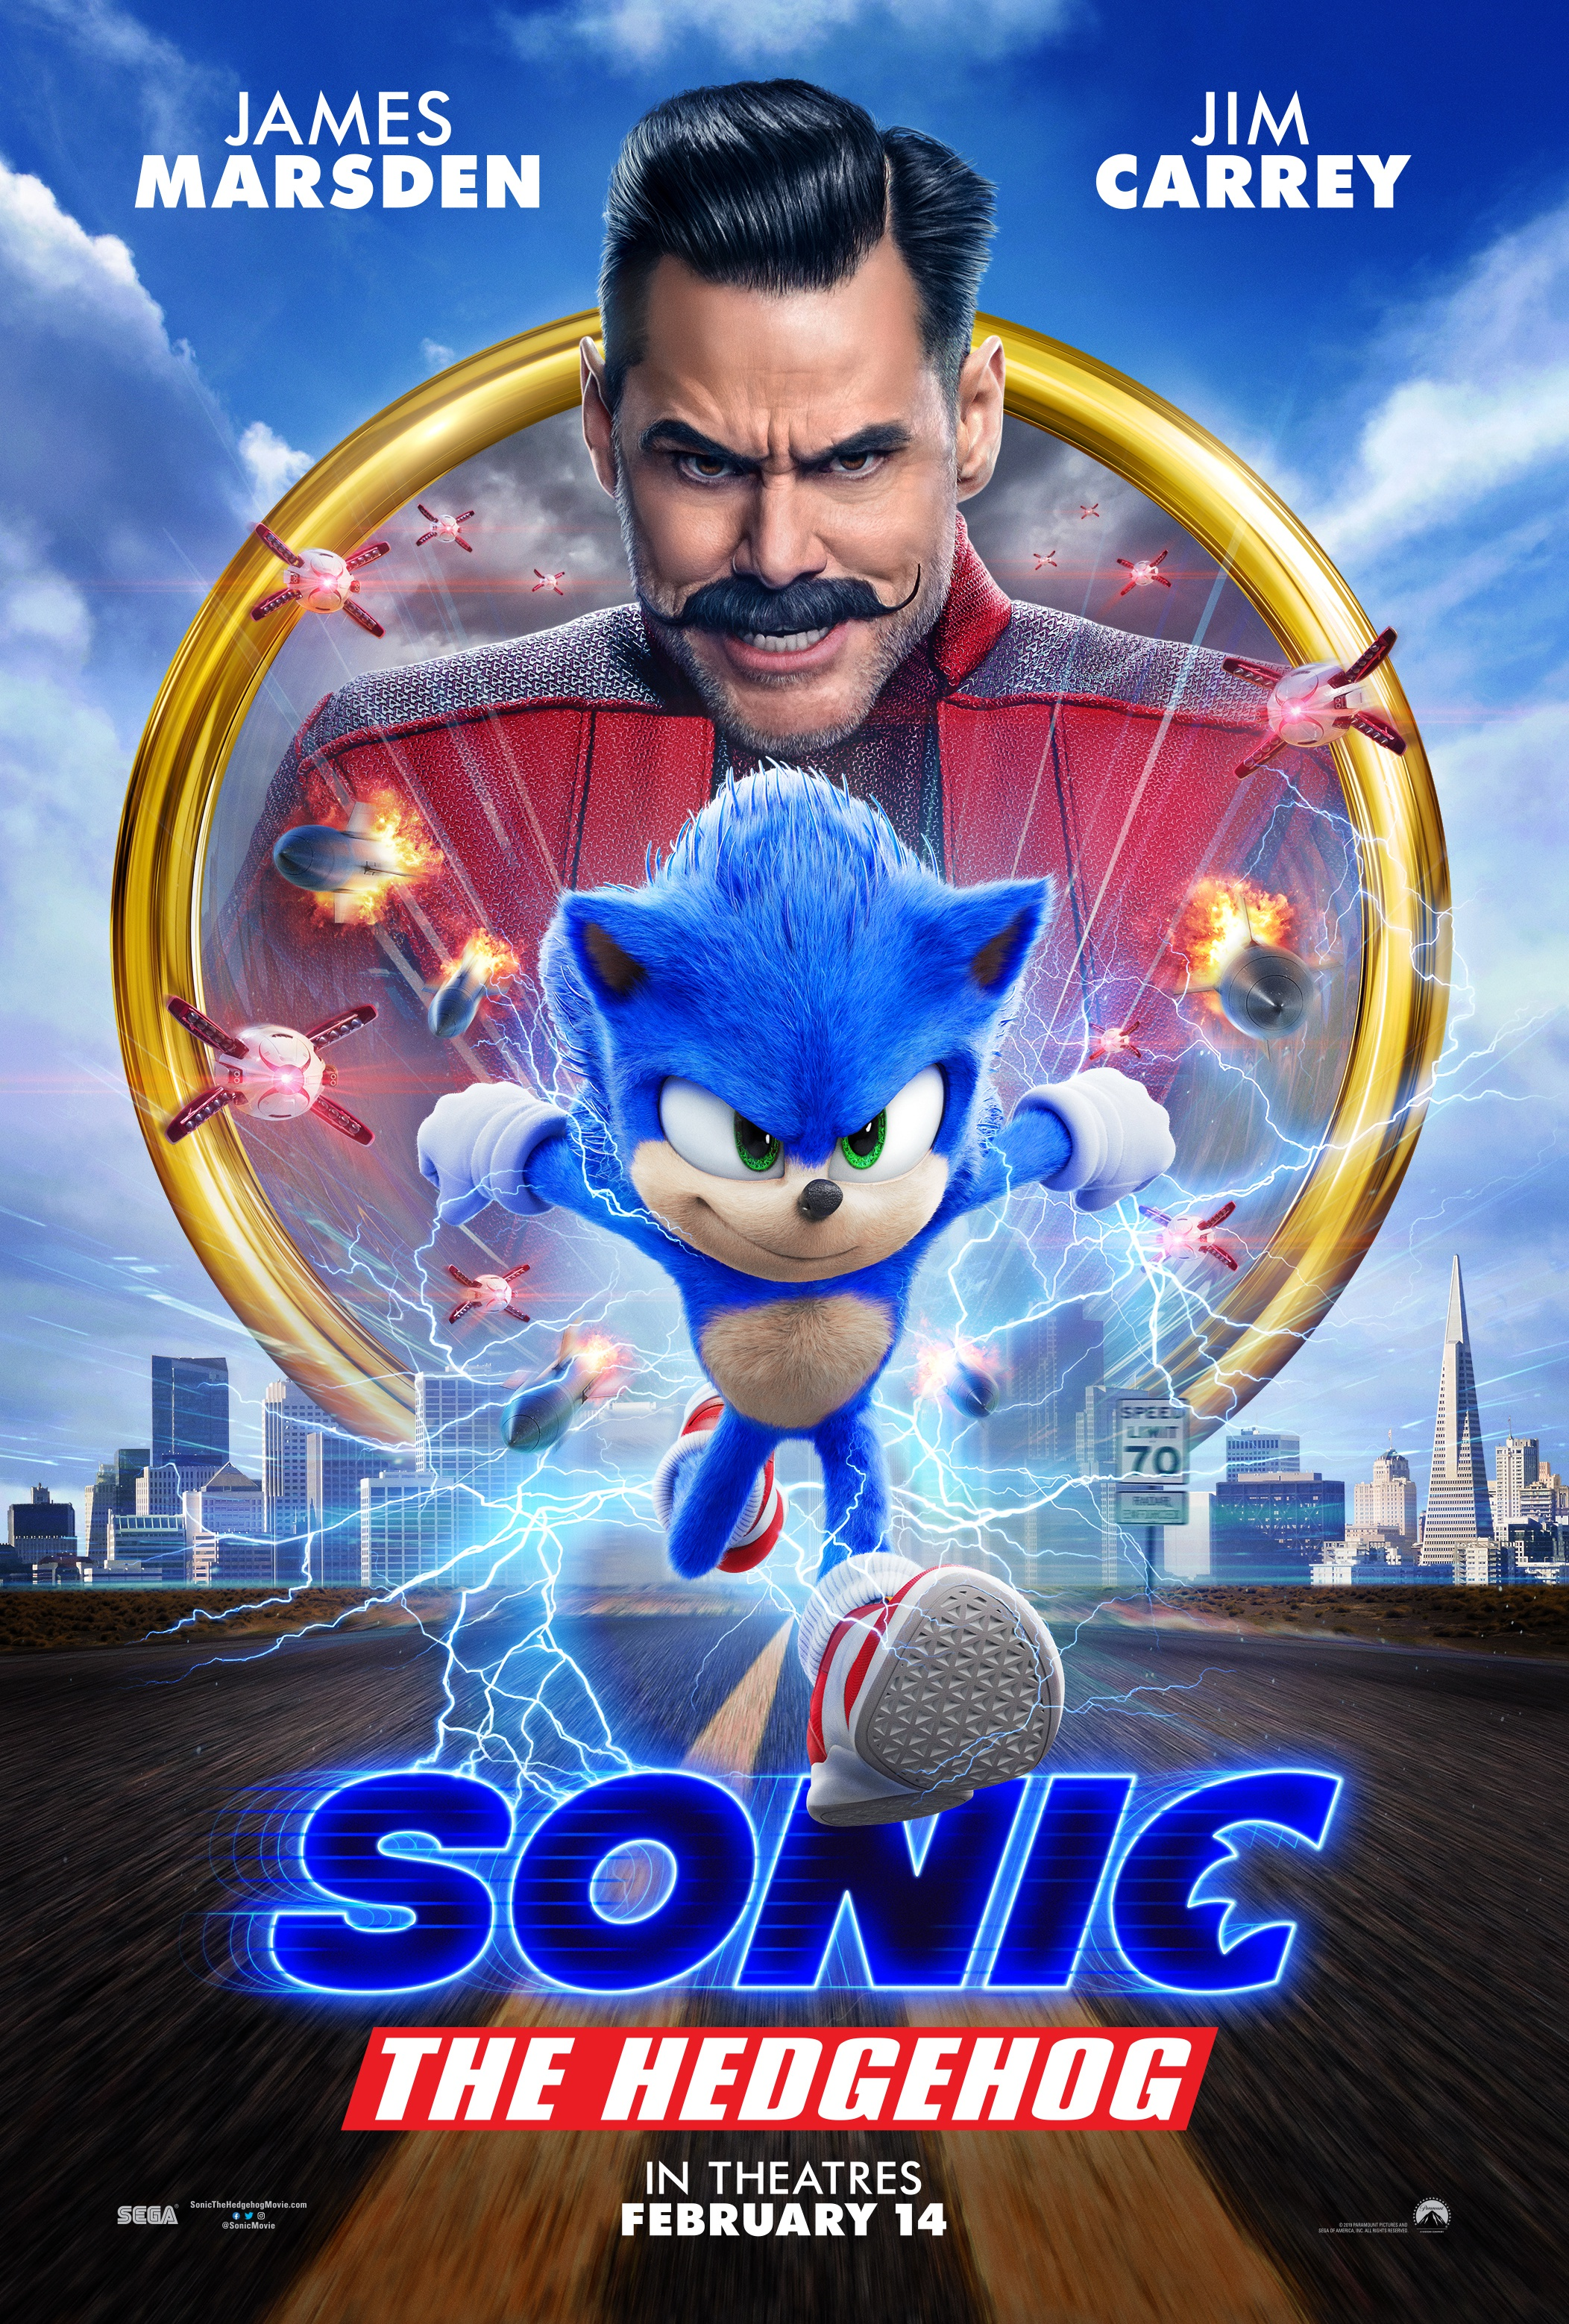 Can I watch Sonic the Hedgehog movie online on Netflix, Hulu, or ...